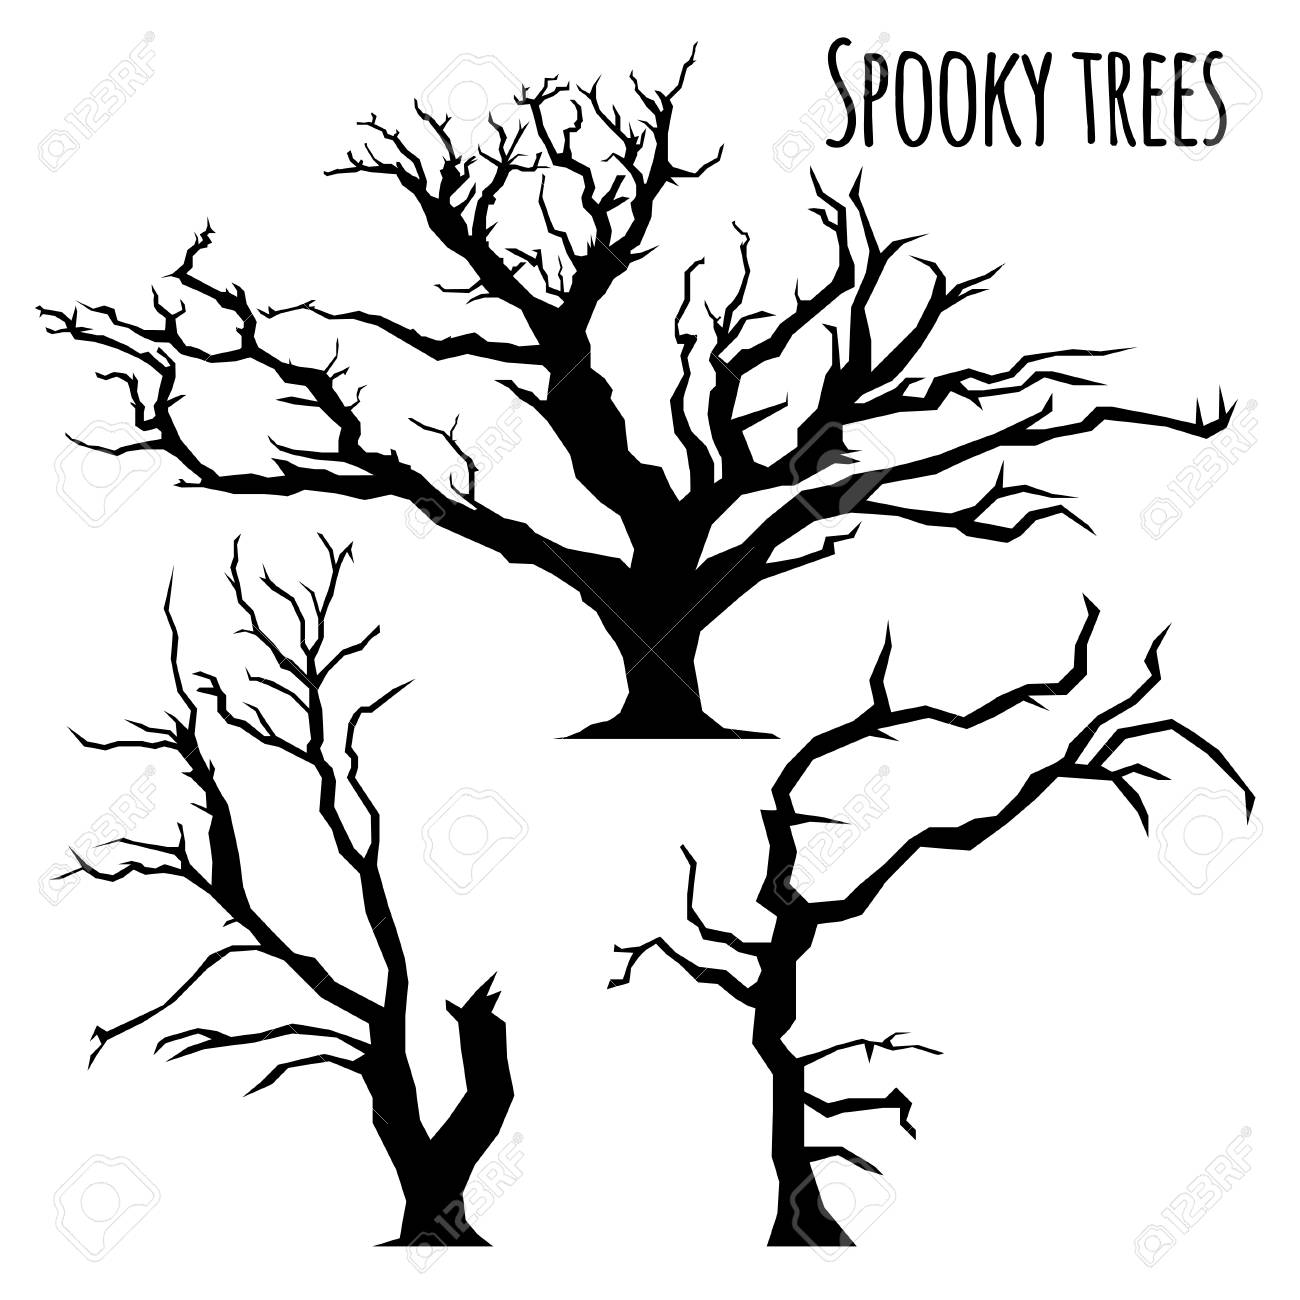 Collection Of Spooky Trees Silhouettes On The White Background Royalty Free Cliparts Vectors And Stock Illustration Image 86963745